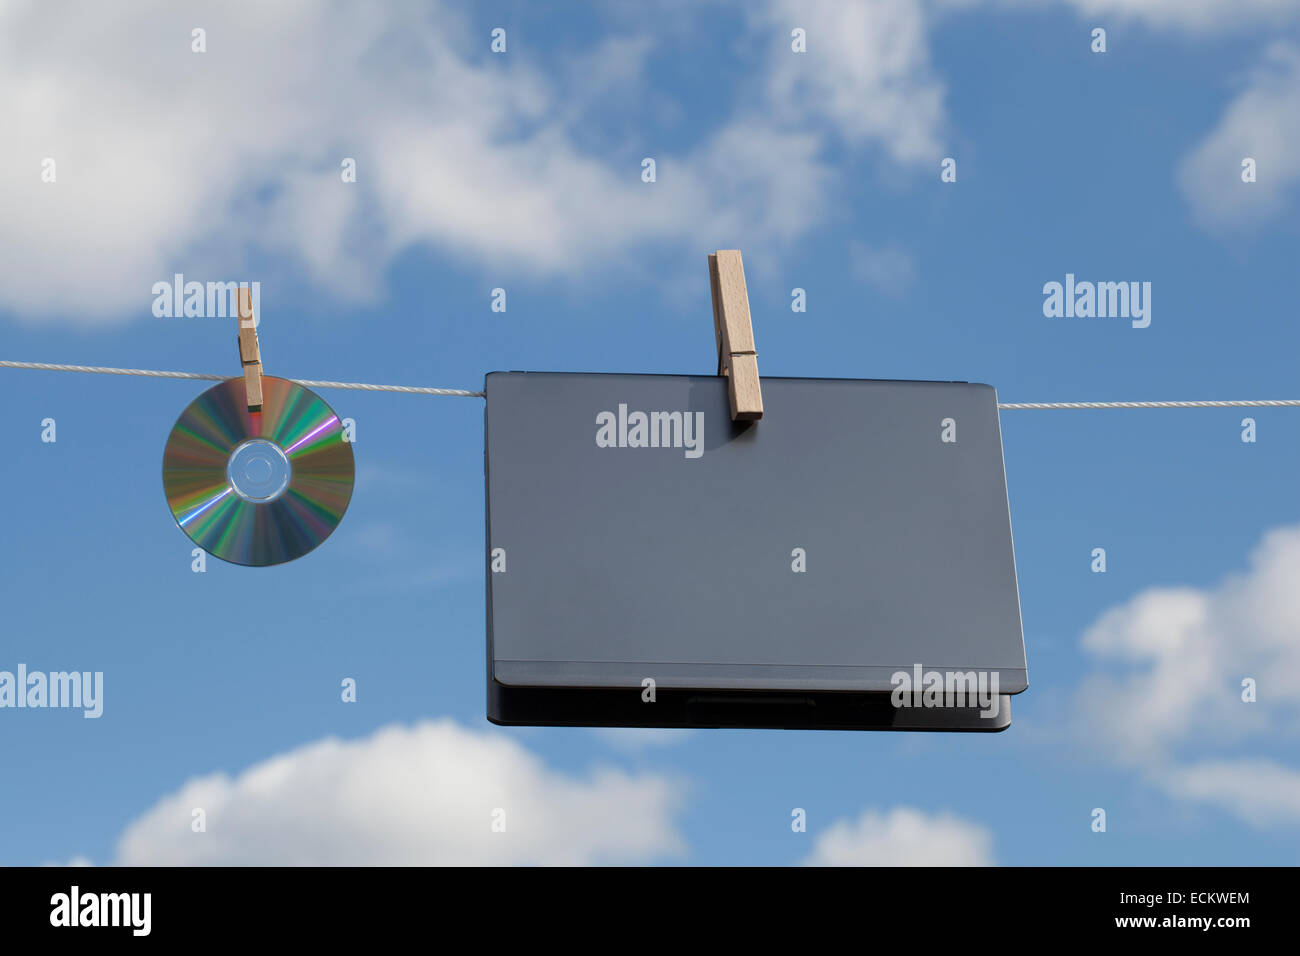 Laptop and a CD hanged on a clothesline. - Stock Image